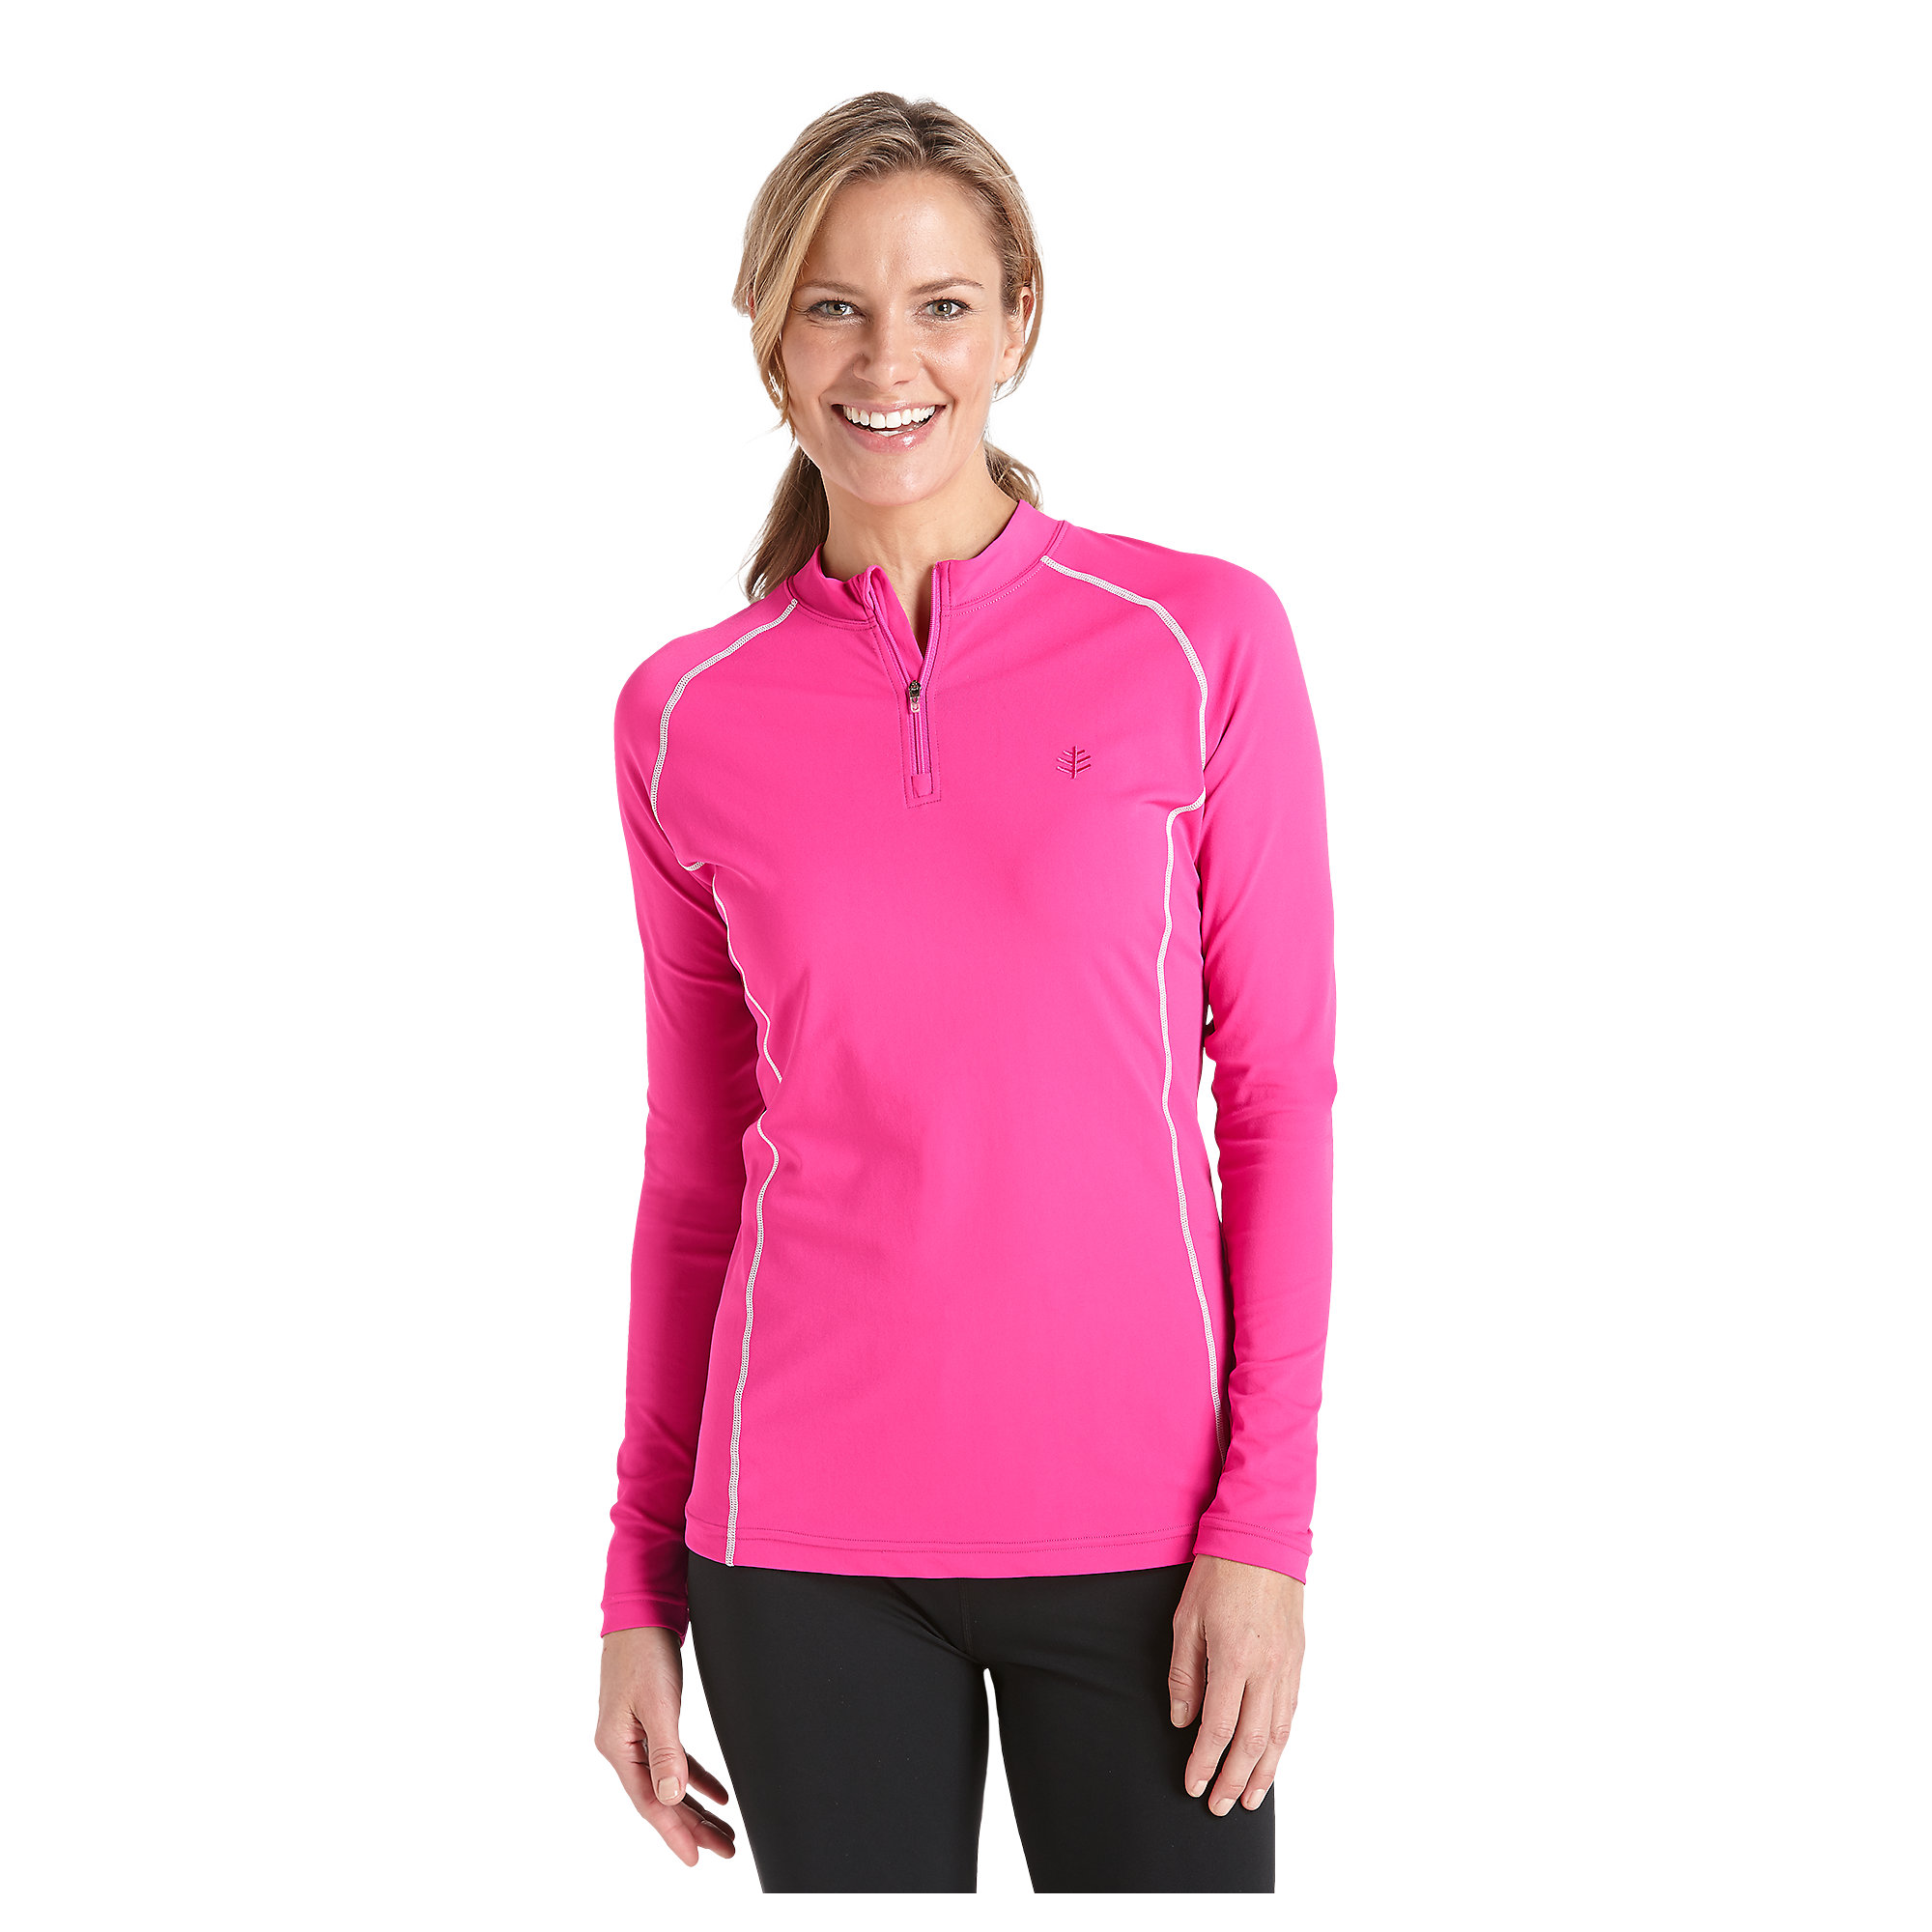 coolibar upf 50 women 39 s quarter zip long sleeve swim